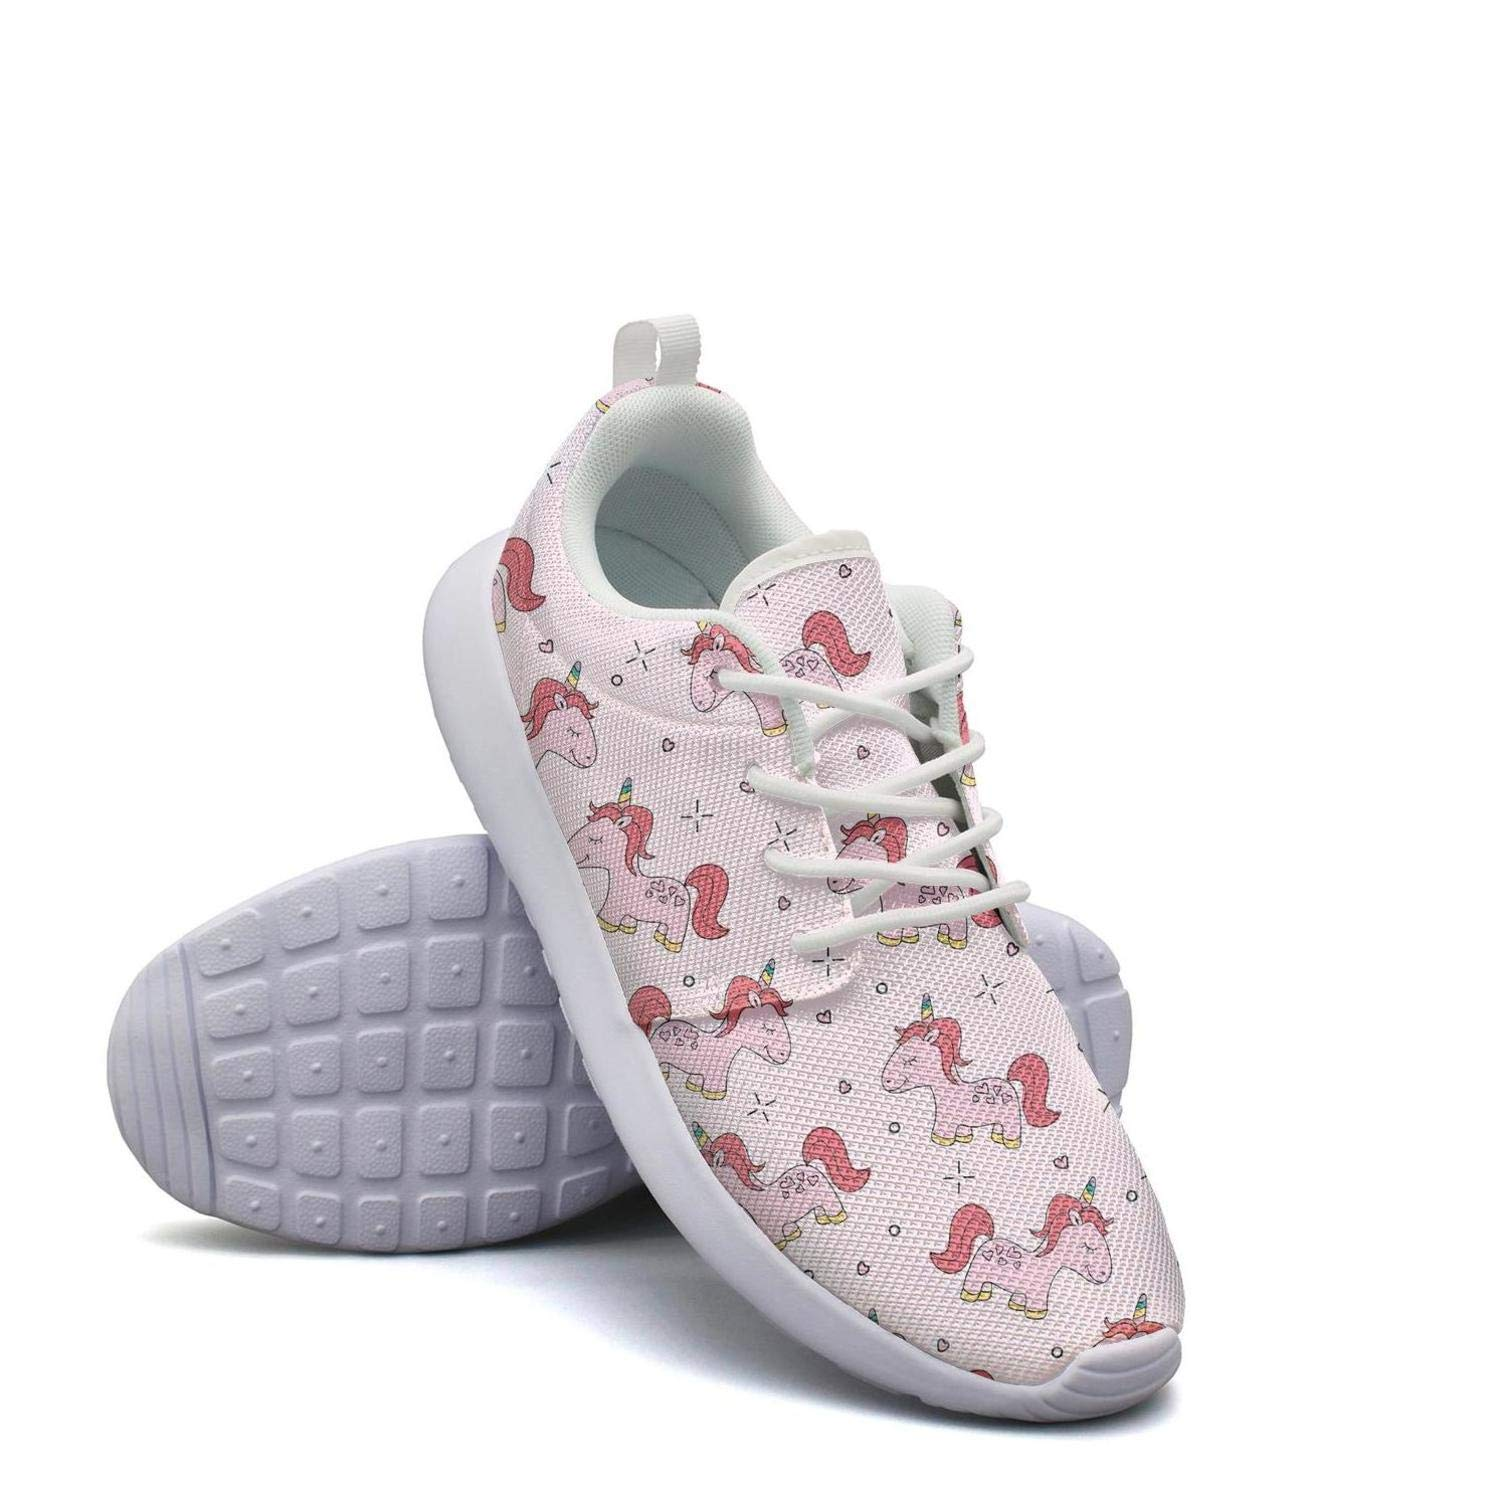 fsdfdsfds Womens Athletic Shoes Sneaker Non-Slip Jogging Shoes Knit Pattern